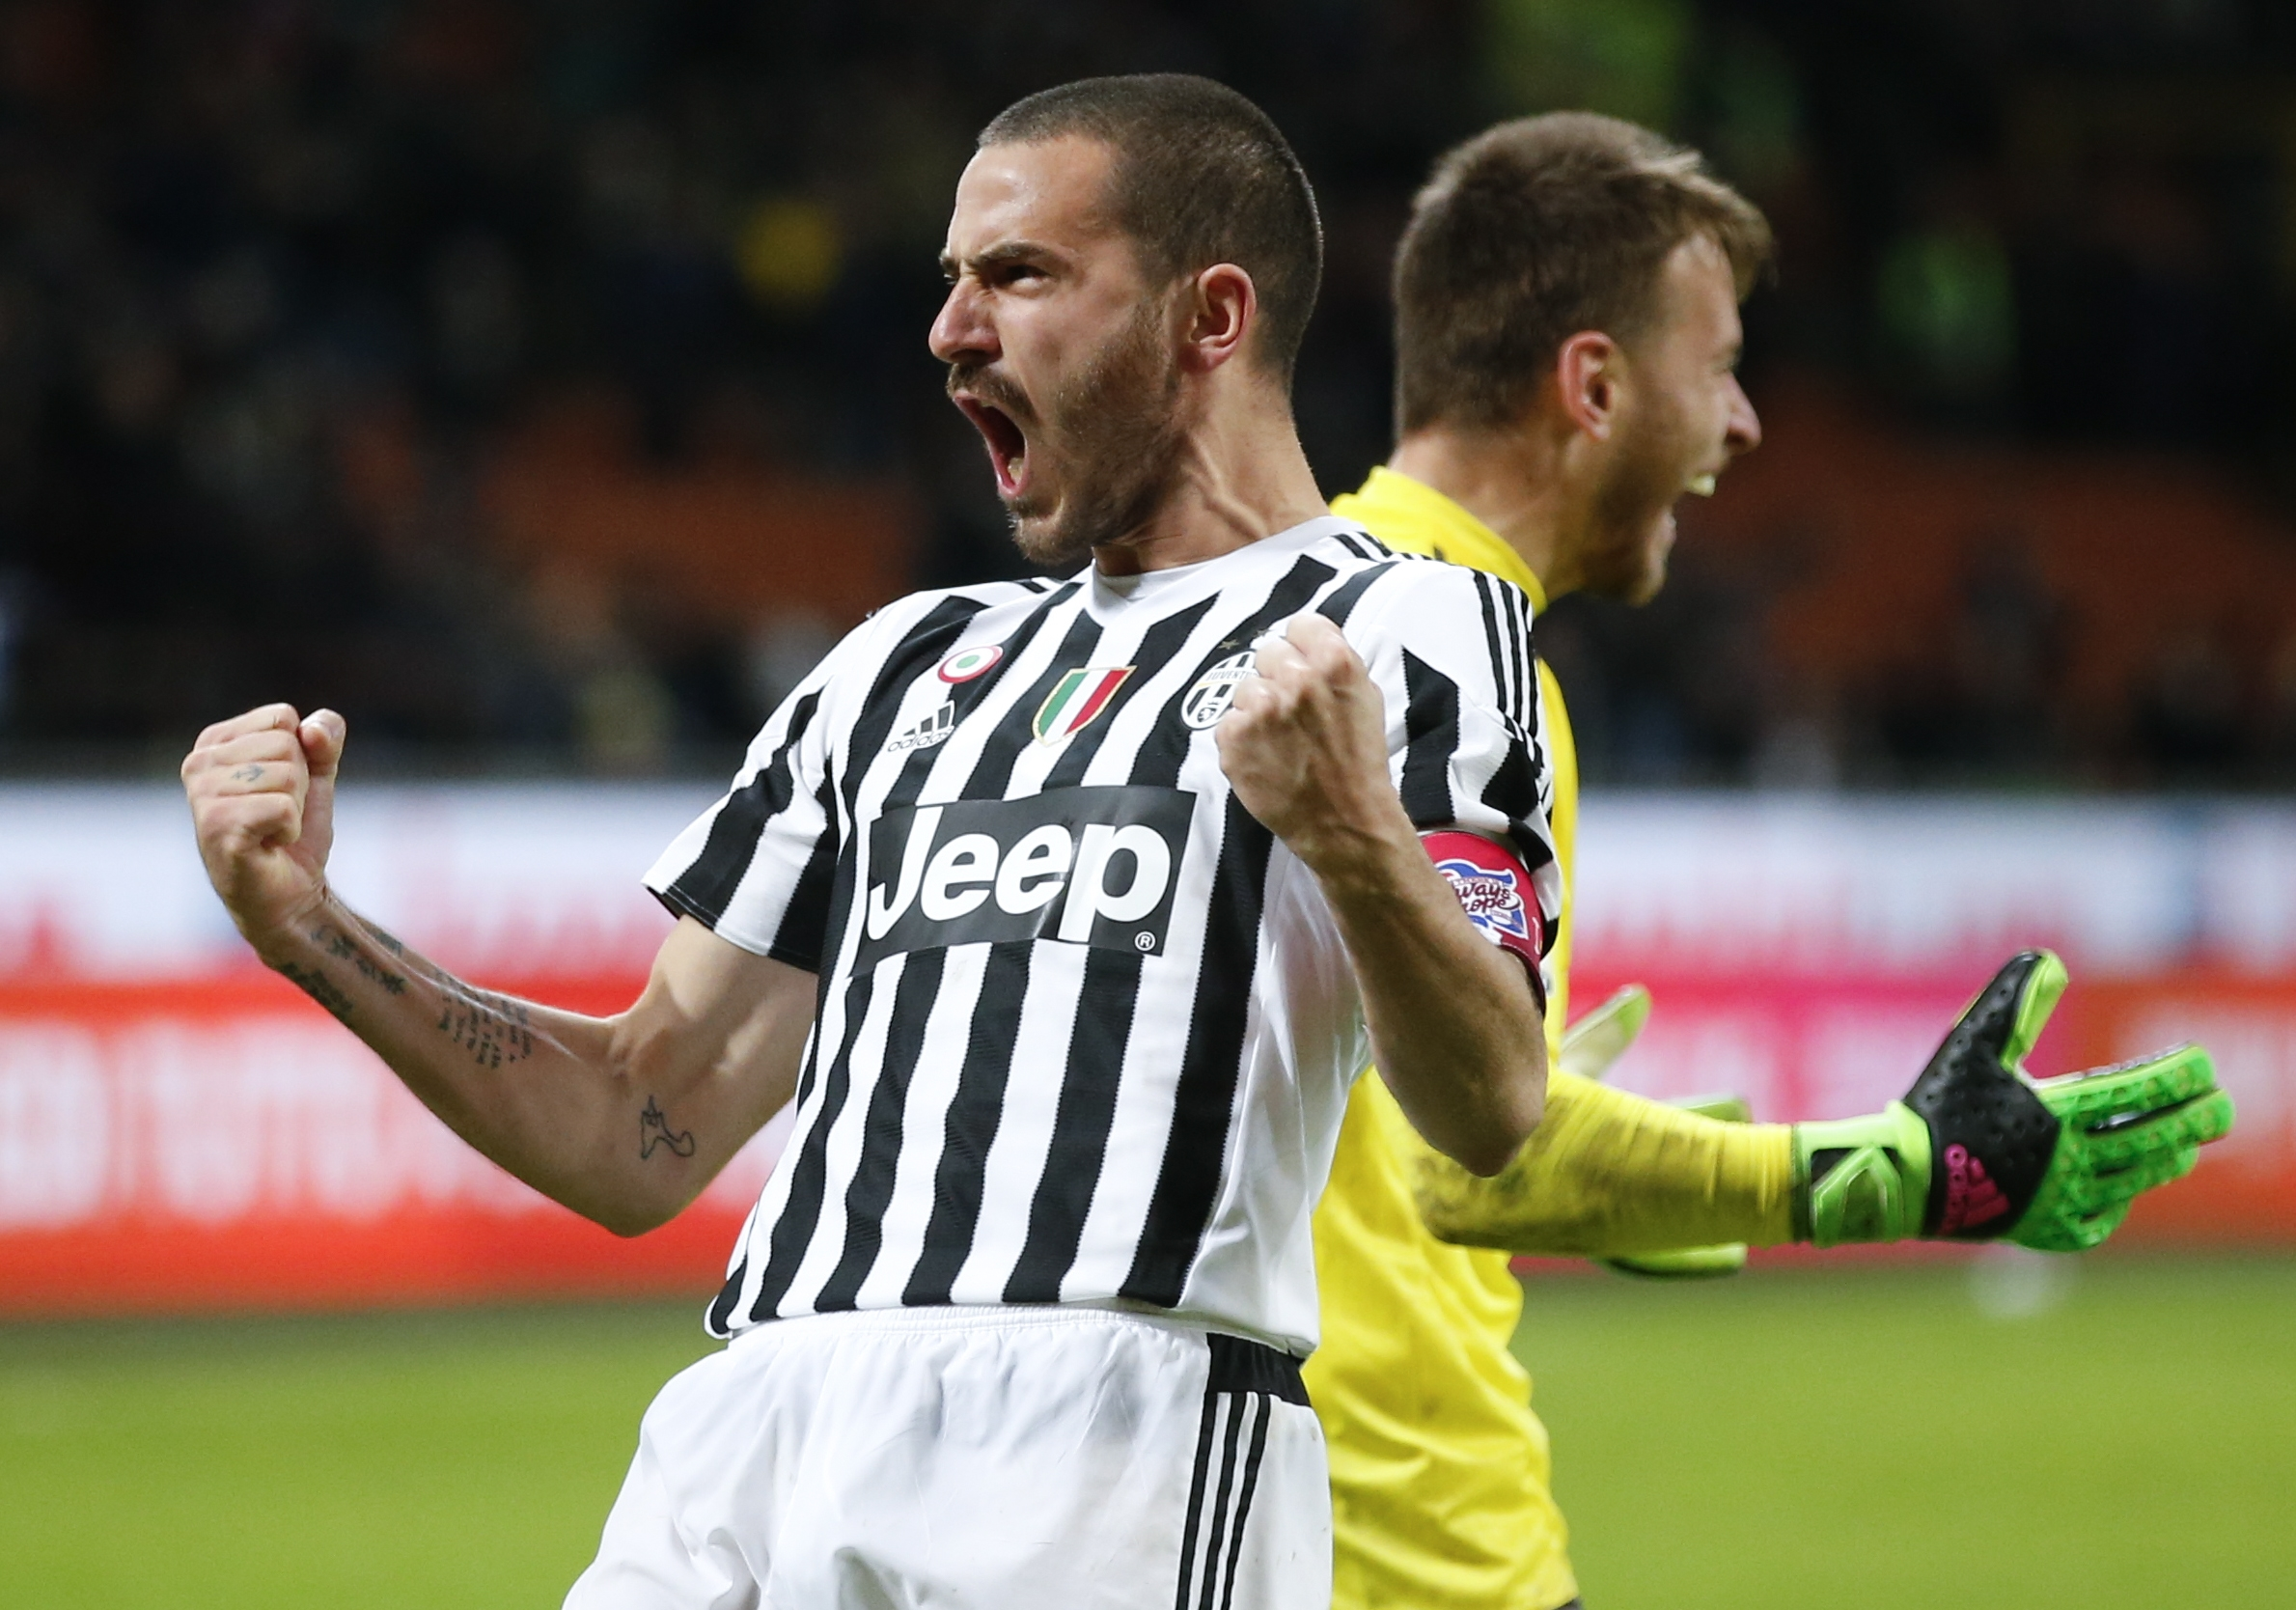 Juventus' Leonardo Bonucci celebrates past his teammate goalkeeper Neto after scoring decisive goal that gave his team a 5-2 win over Inter Milan,  a penalty shootout during the Italian Cup second leg semifinal soccer match, at the San Siro stadium in Milan, Italy, Wednesday, March 2, 2016. (AP Photo/Antonio Calanni)